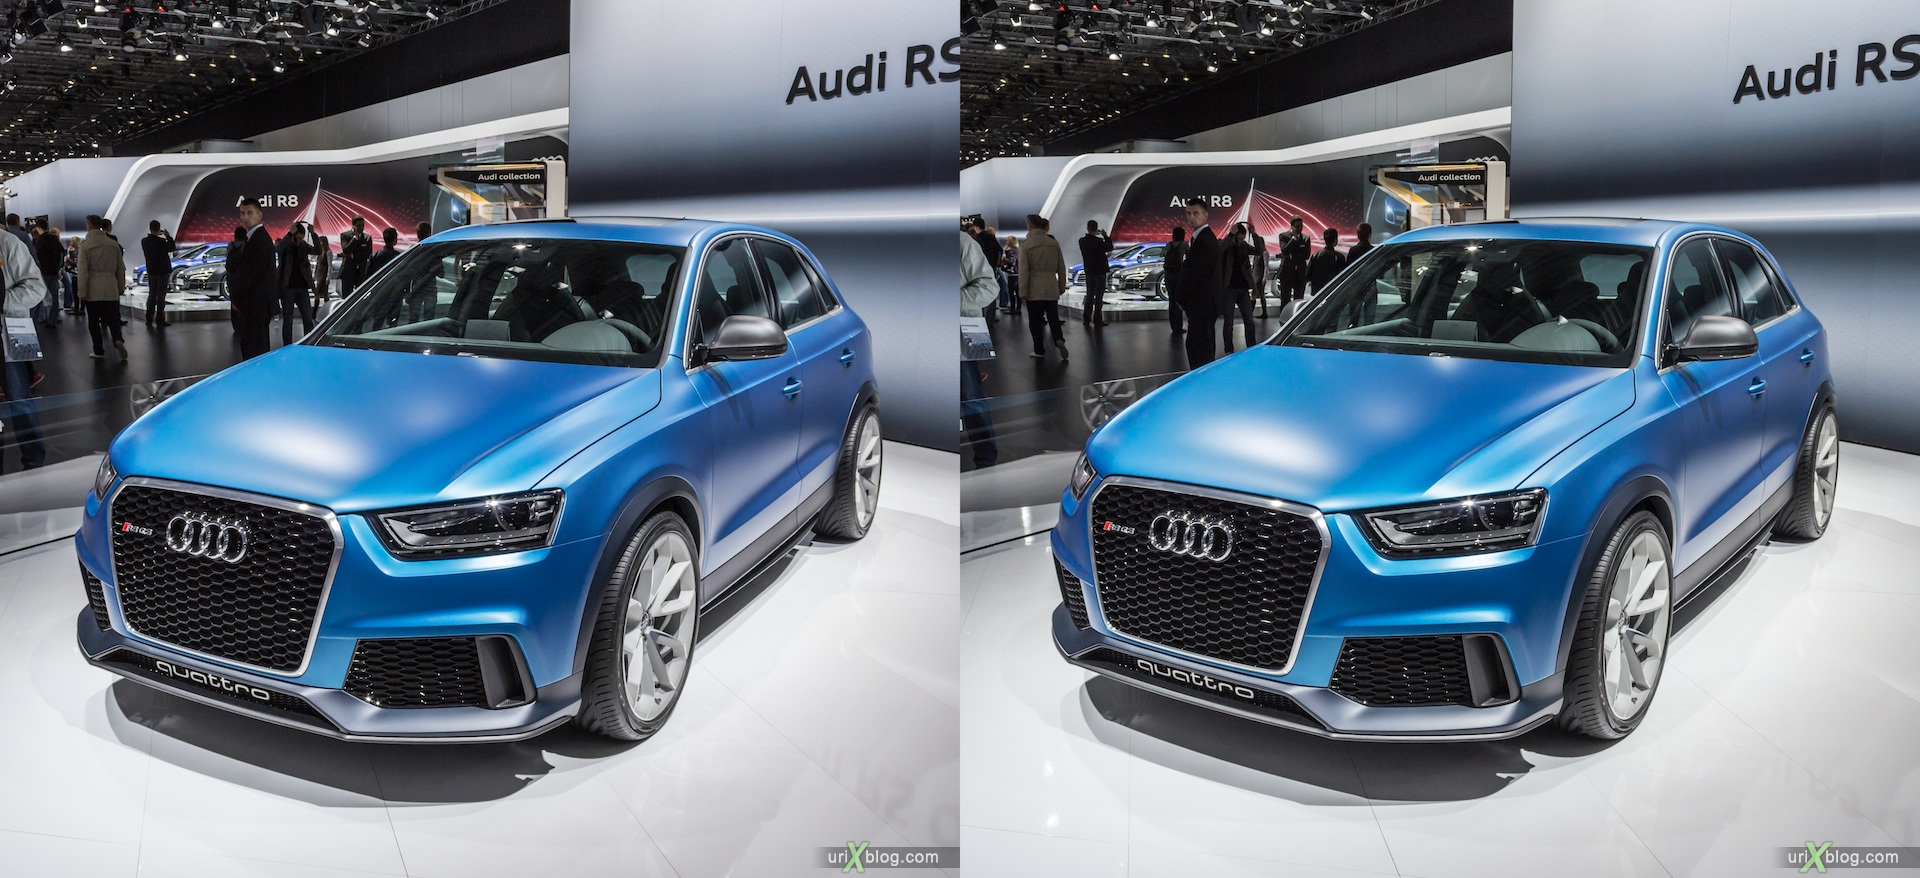 2012, Audi RS Q3 Quattro, Moscow International Automobile Salon, auto show, 3D, stereo pair, cross-eyed, crossview